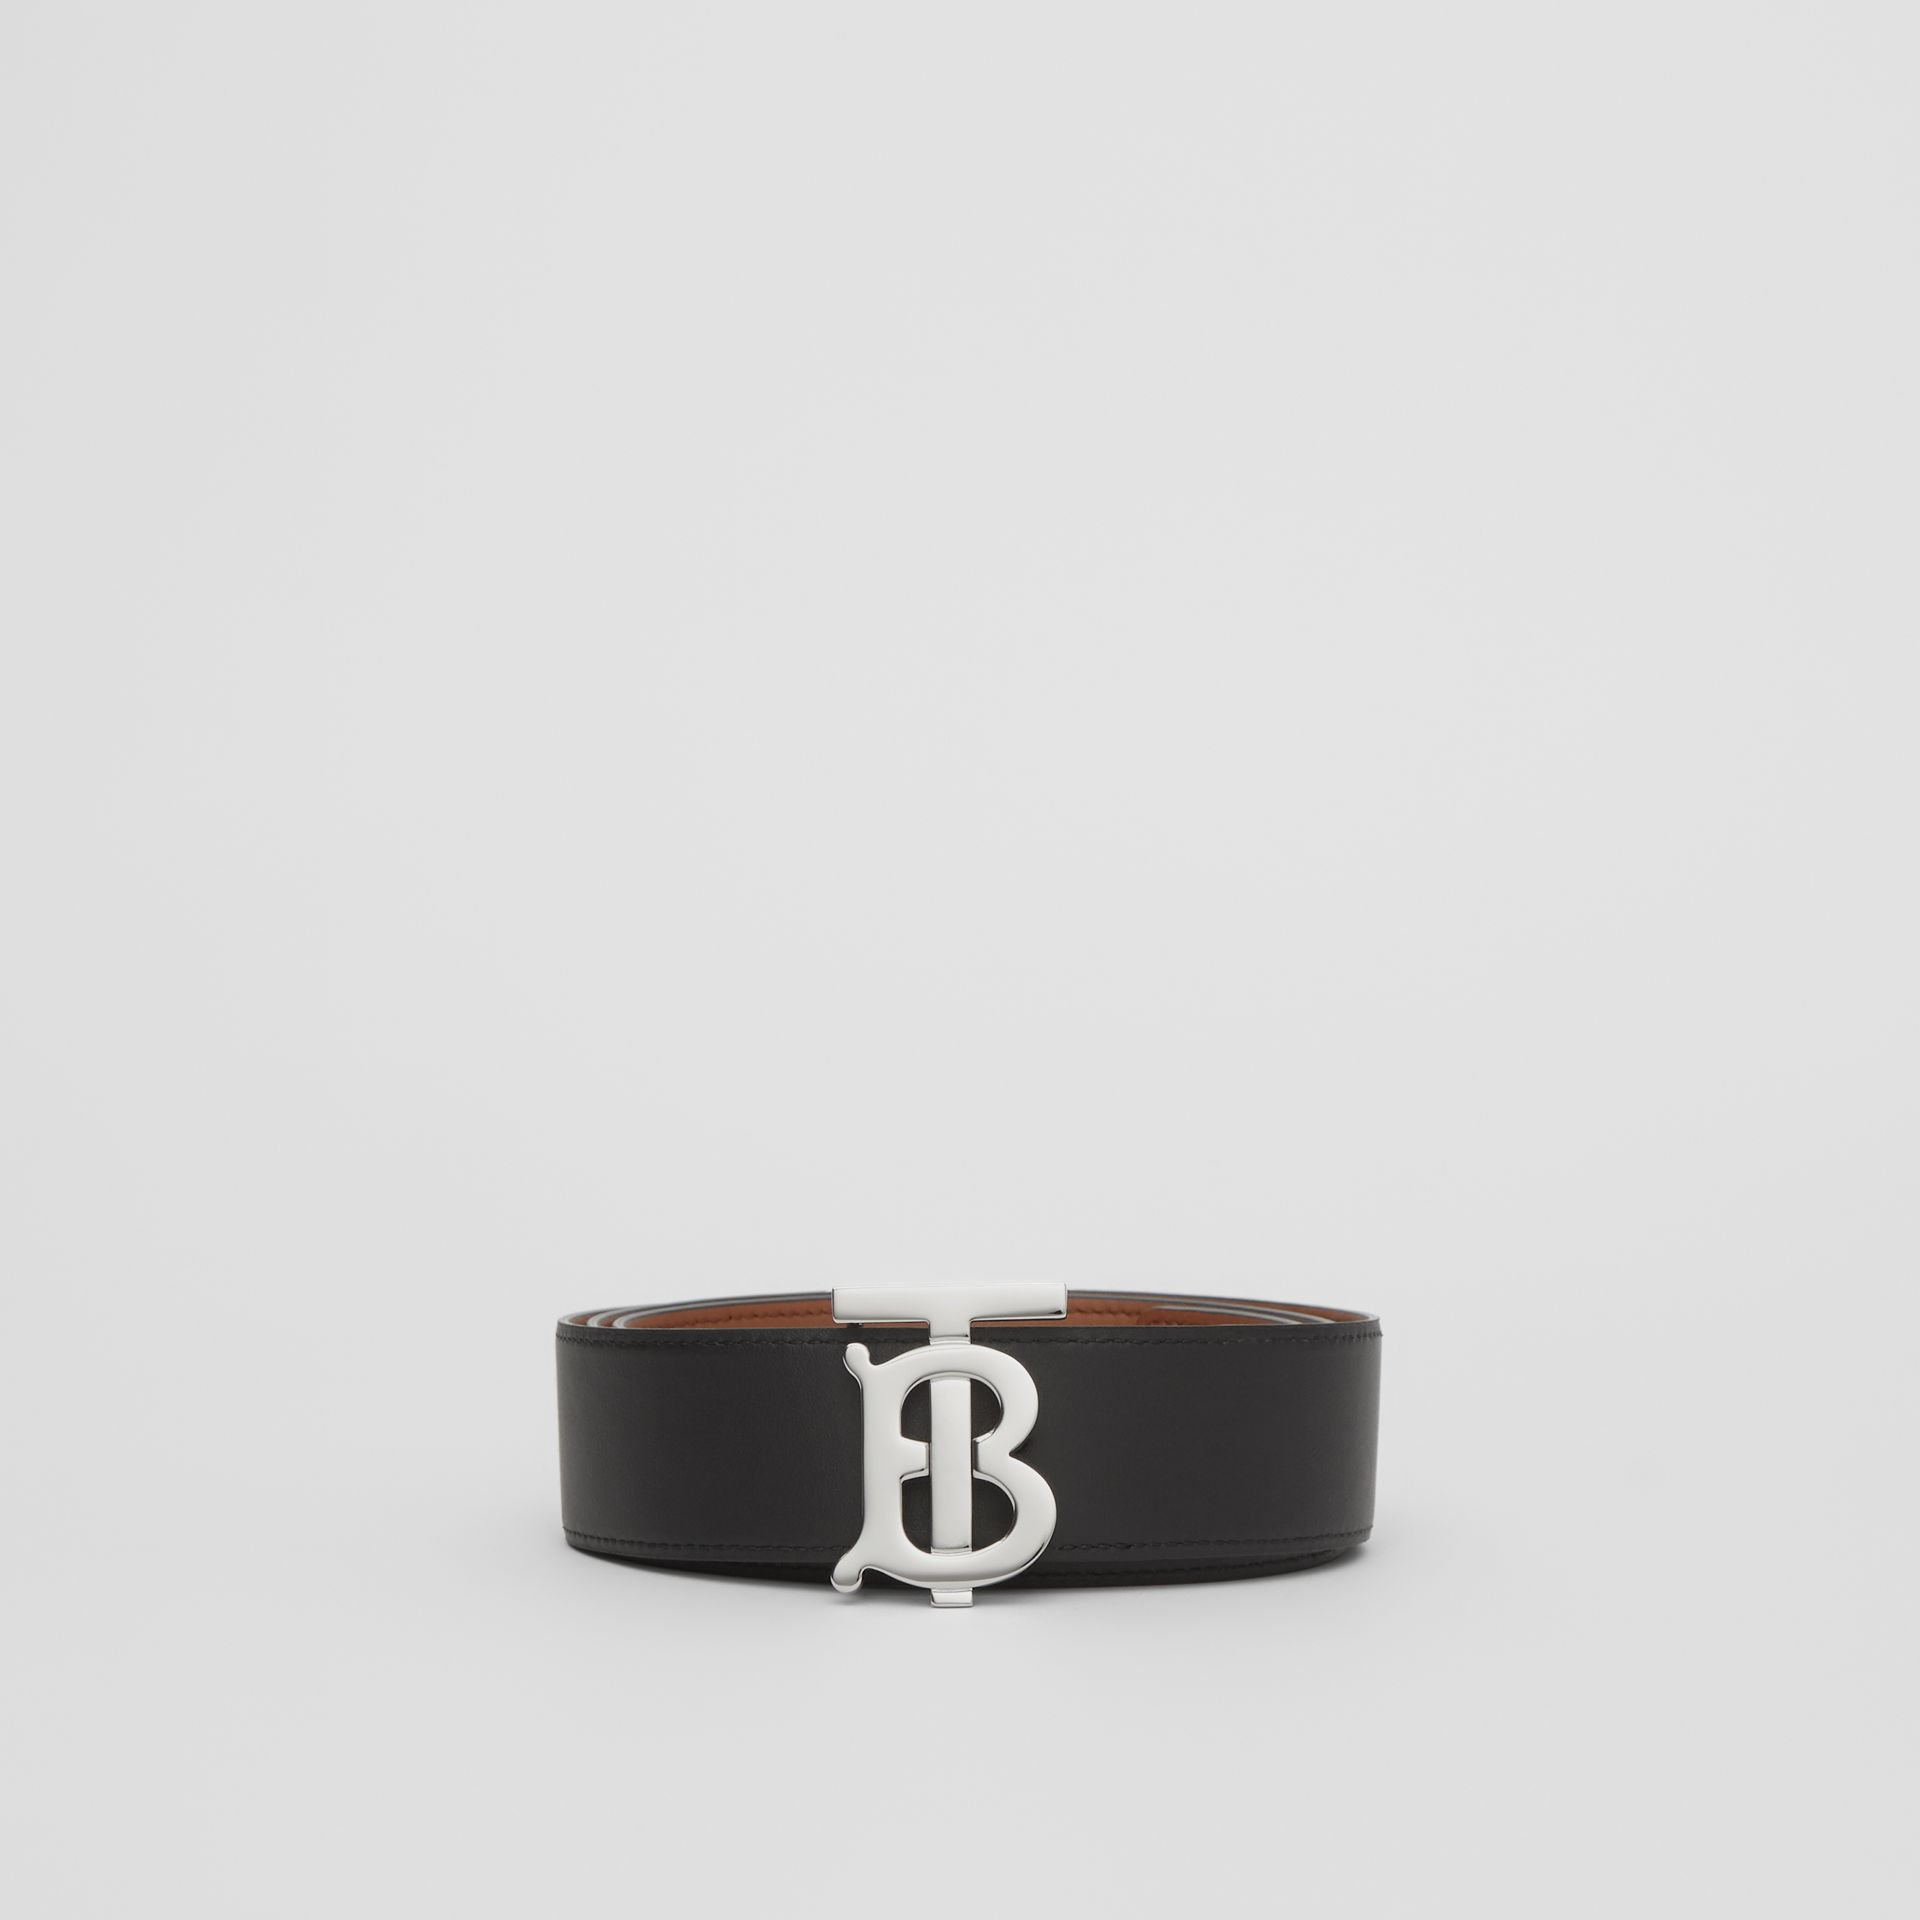 Reversible Monogram Motif Leather Belt in Malt Brown/black - Women | Burberry Hong Kong S.A.R - gallery image 7